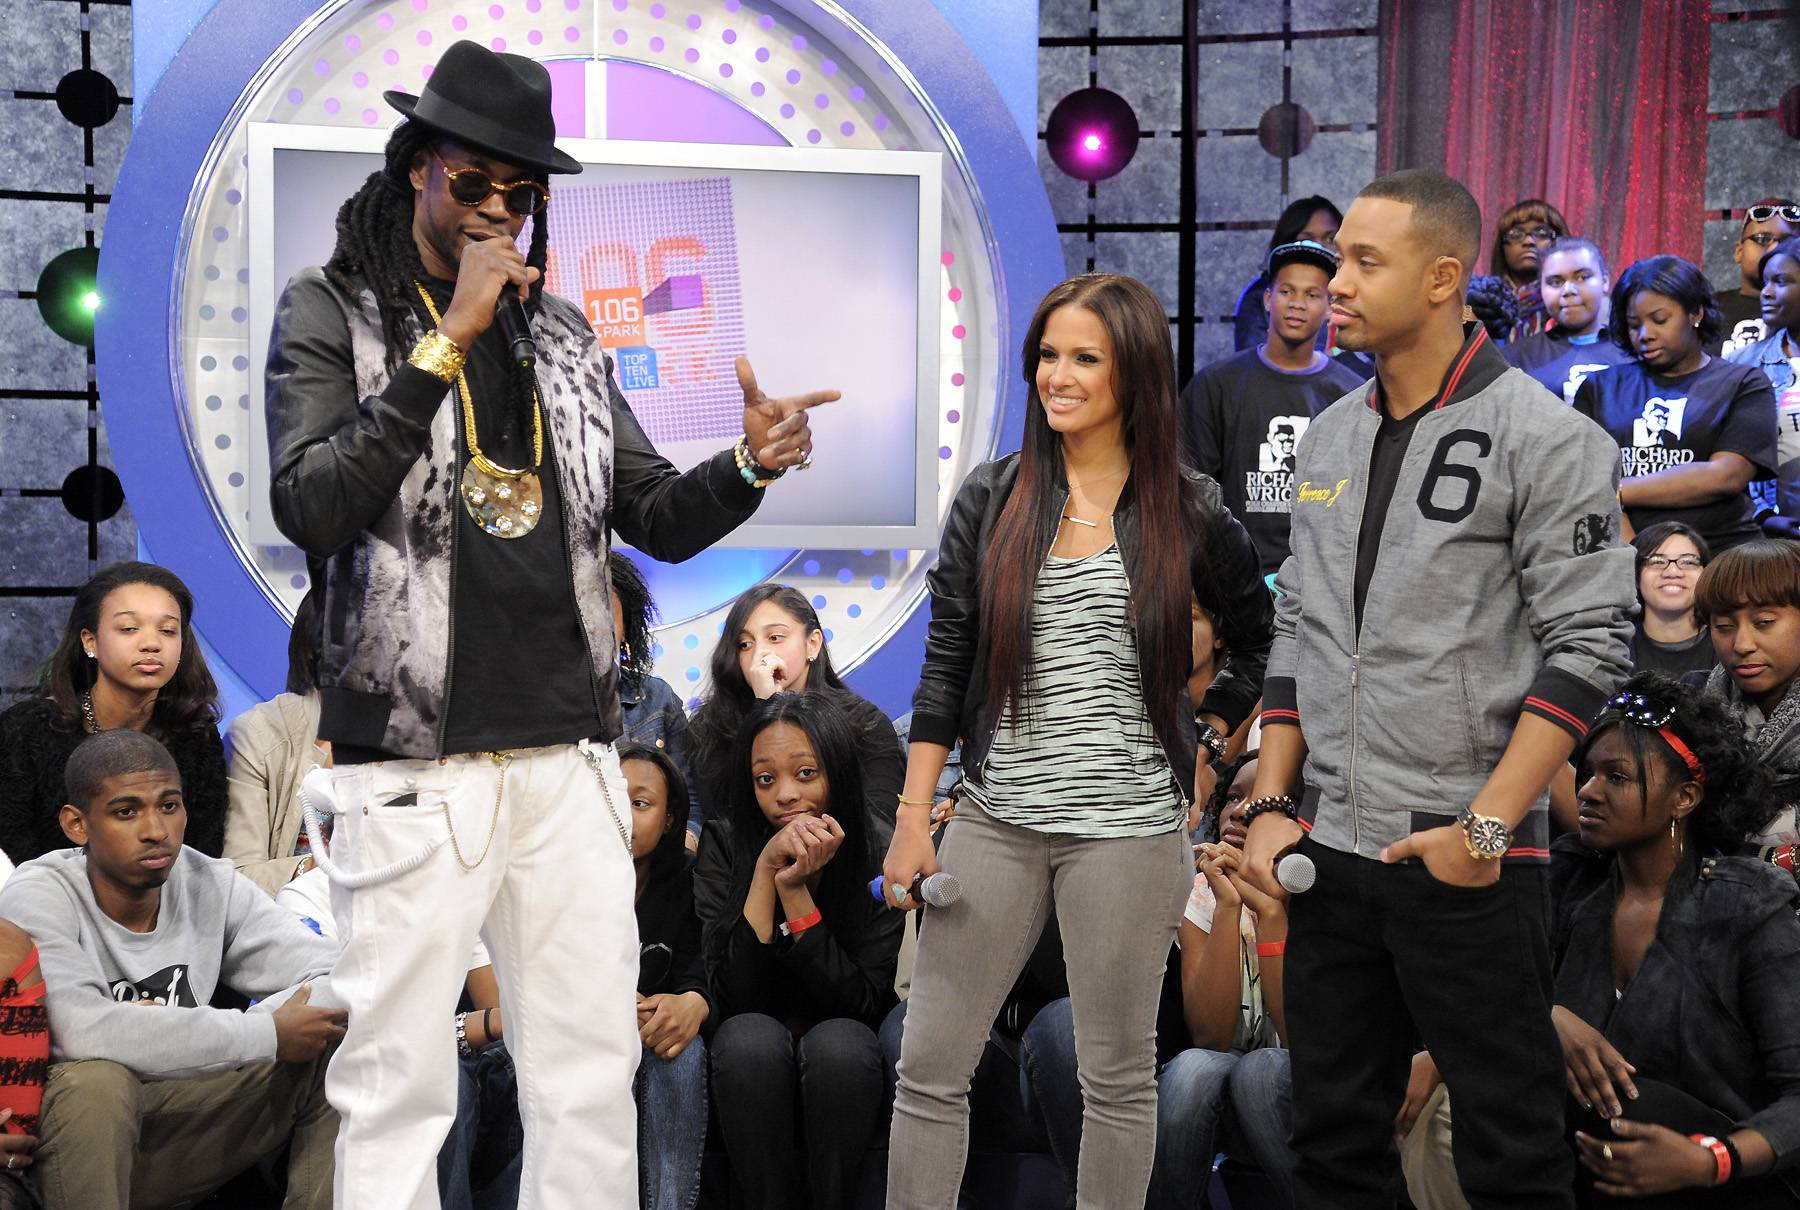 You're Right - 2 Chainz with Rocsi Diaz and Terrence J at 106 & Park, April 9, 2012. (photo: John Ricard / BET)